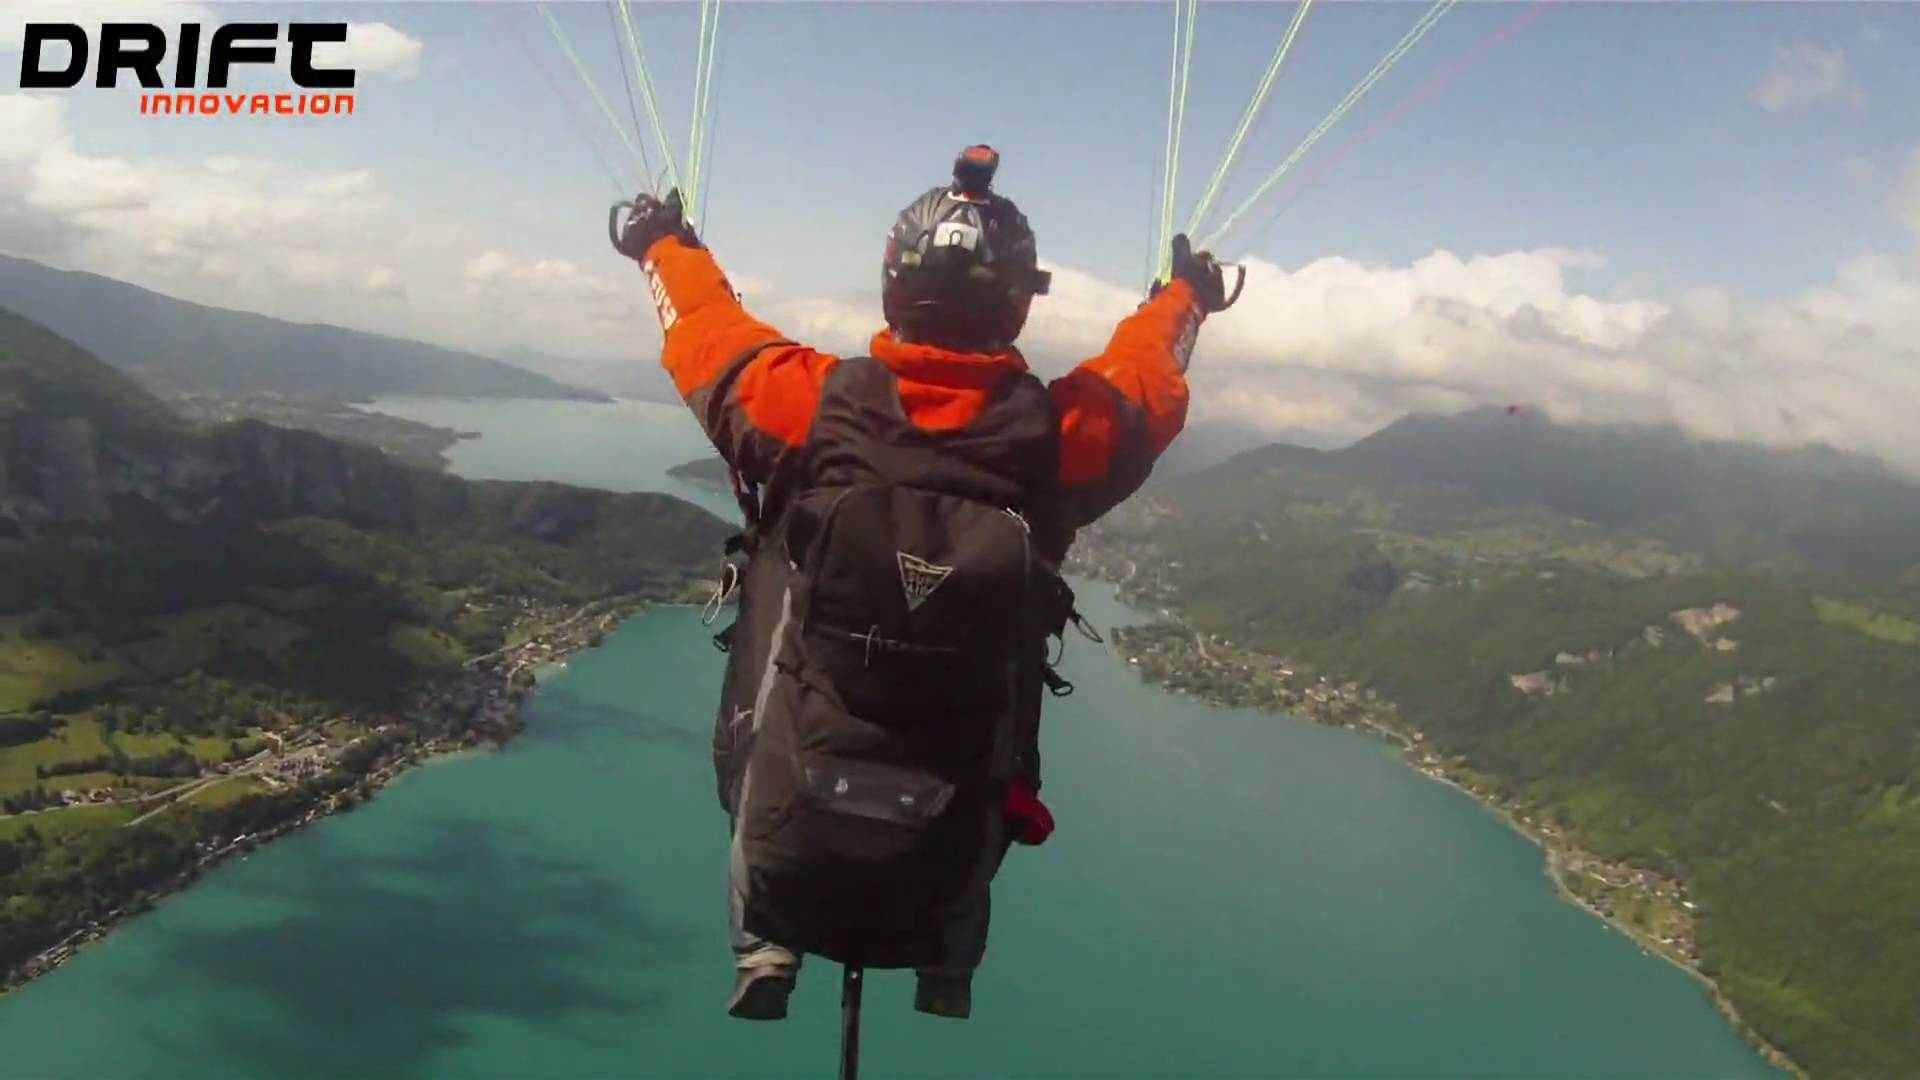 Drift HD170, Paragliding